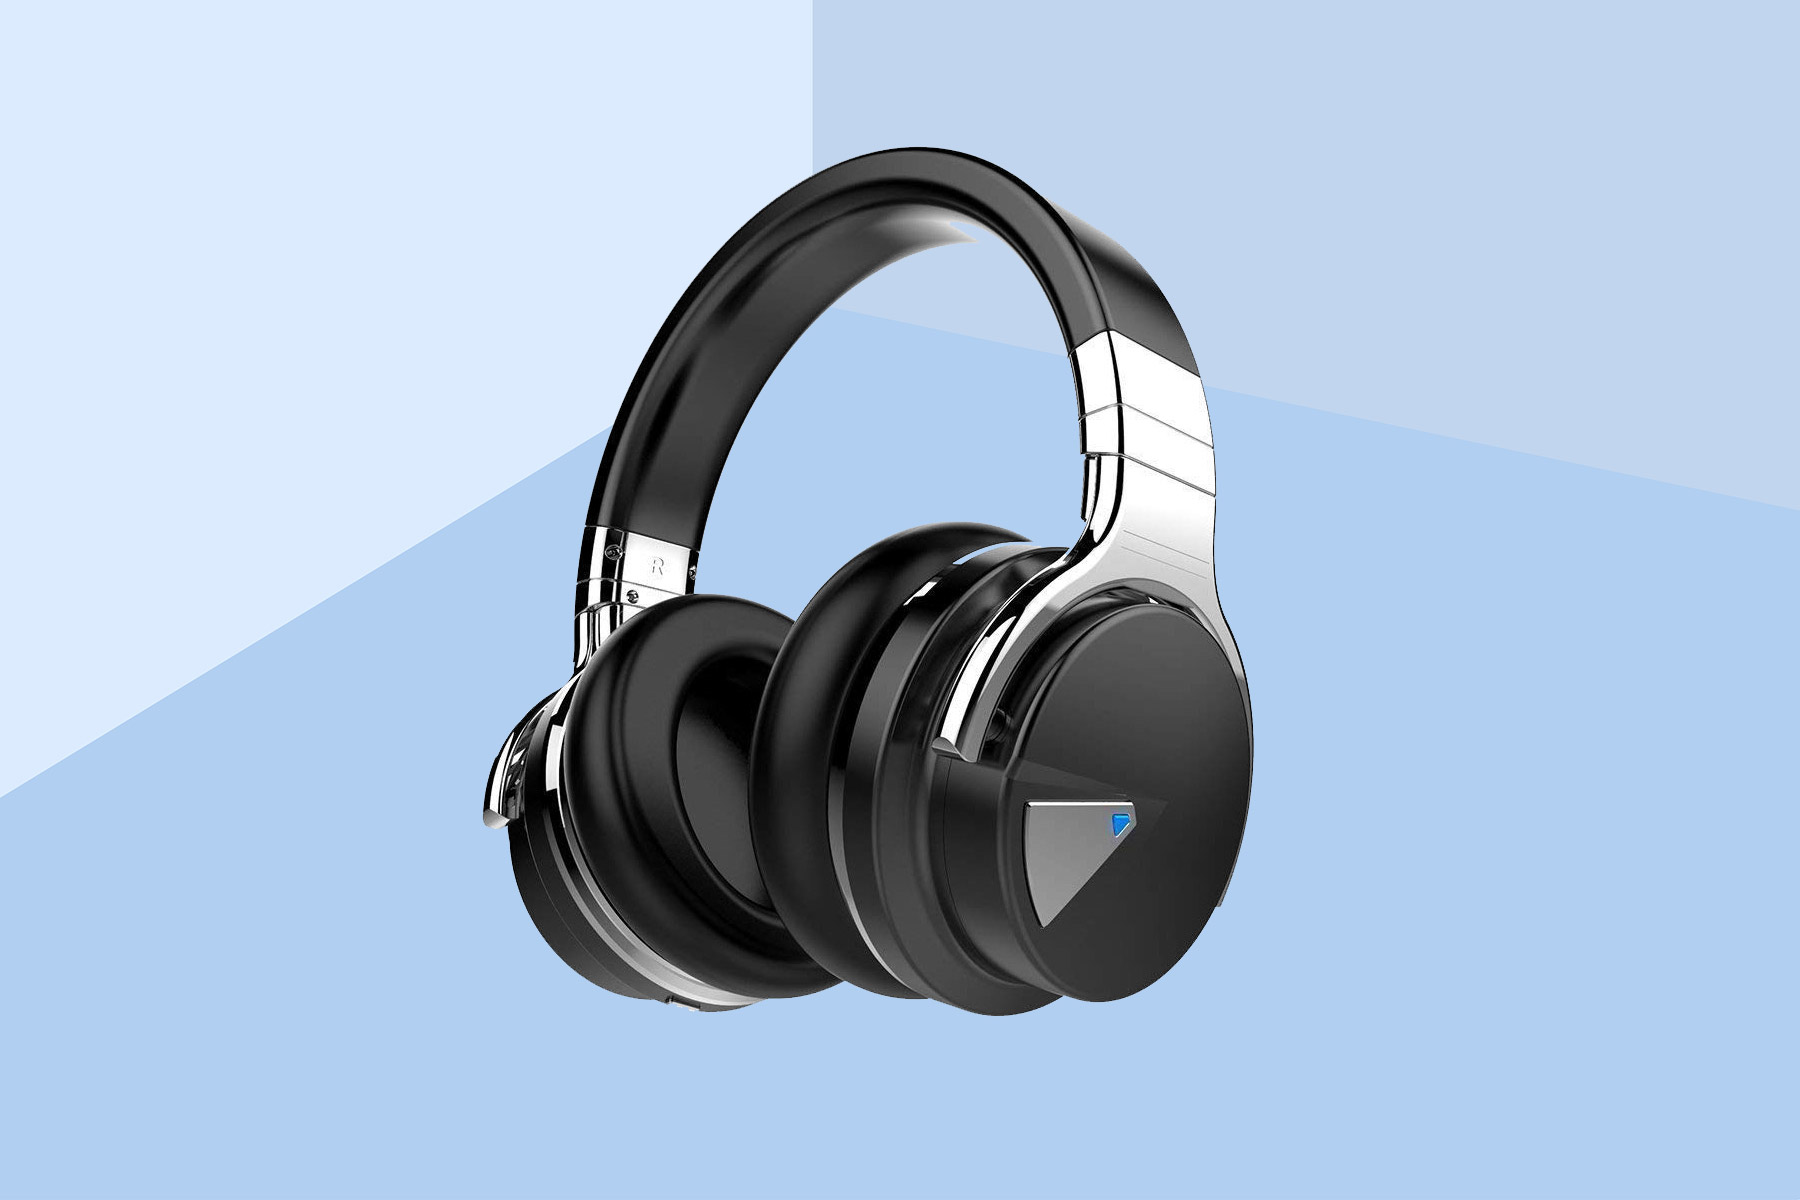 9 Best Bluetooth Headphones Of 2019 According To Reviews Real Simple